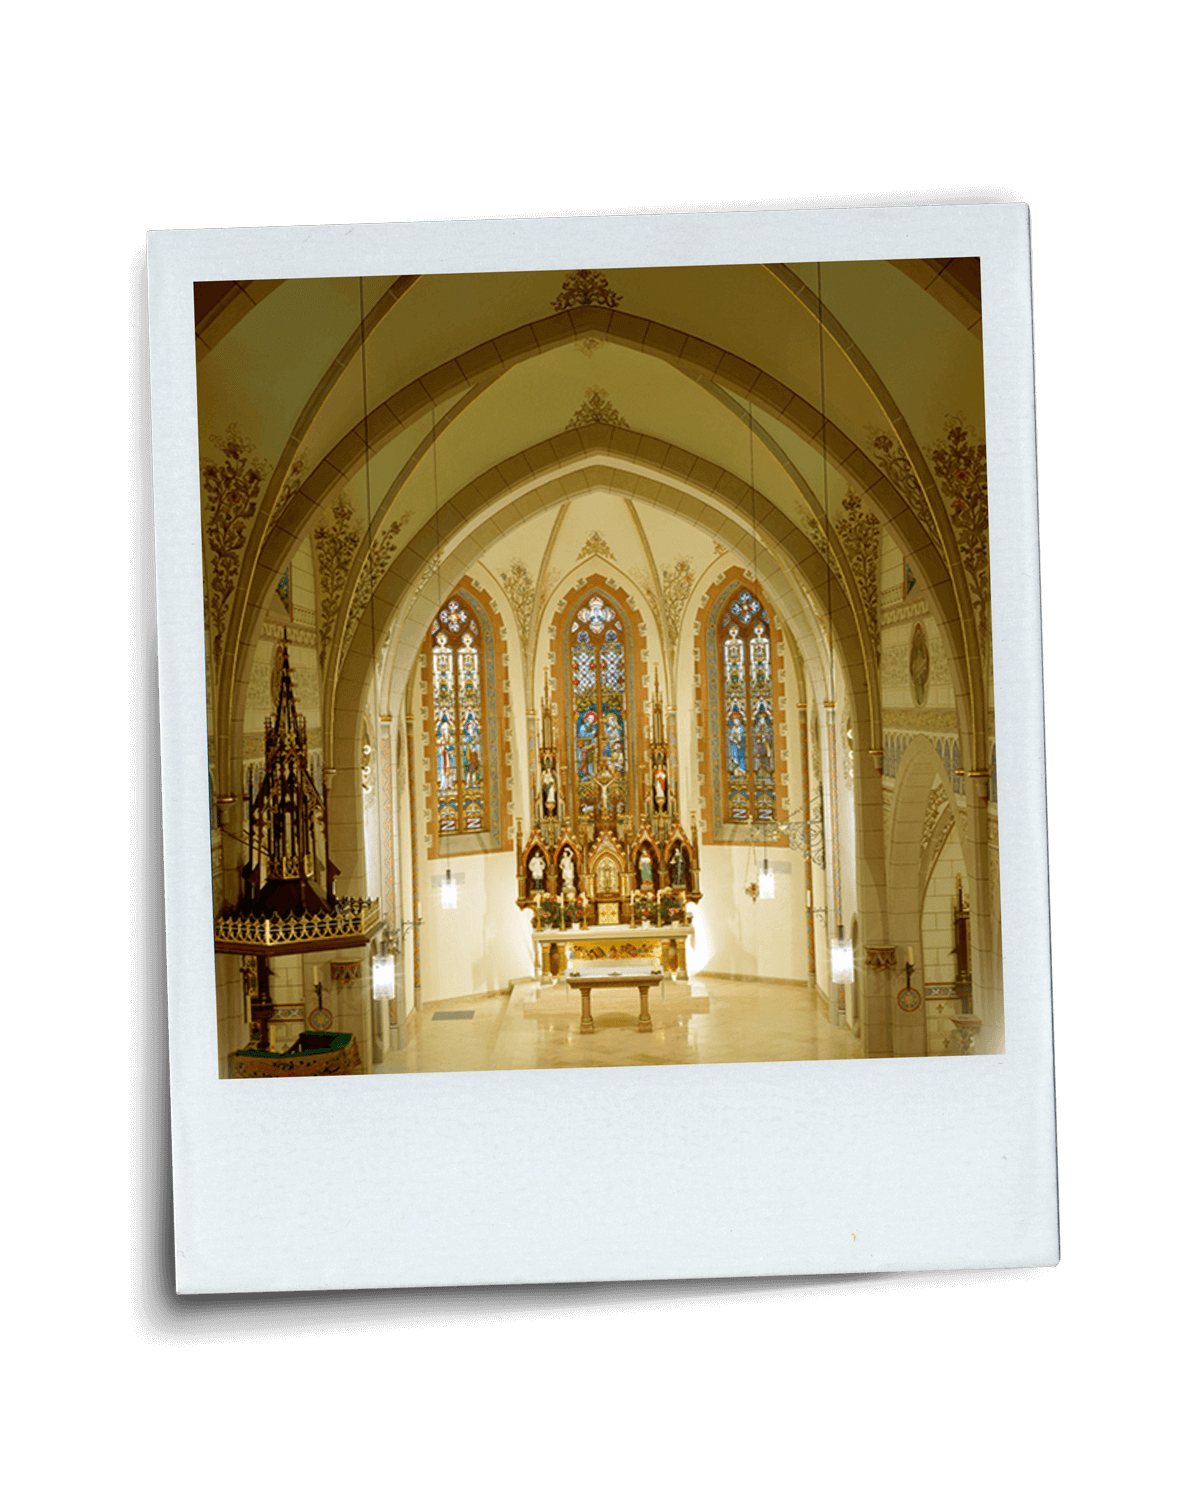 kirche-1990-damian-werner-historie